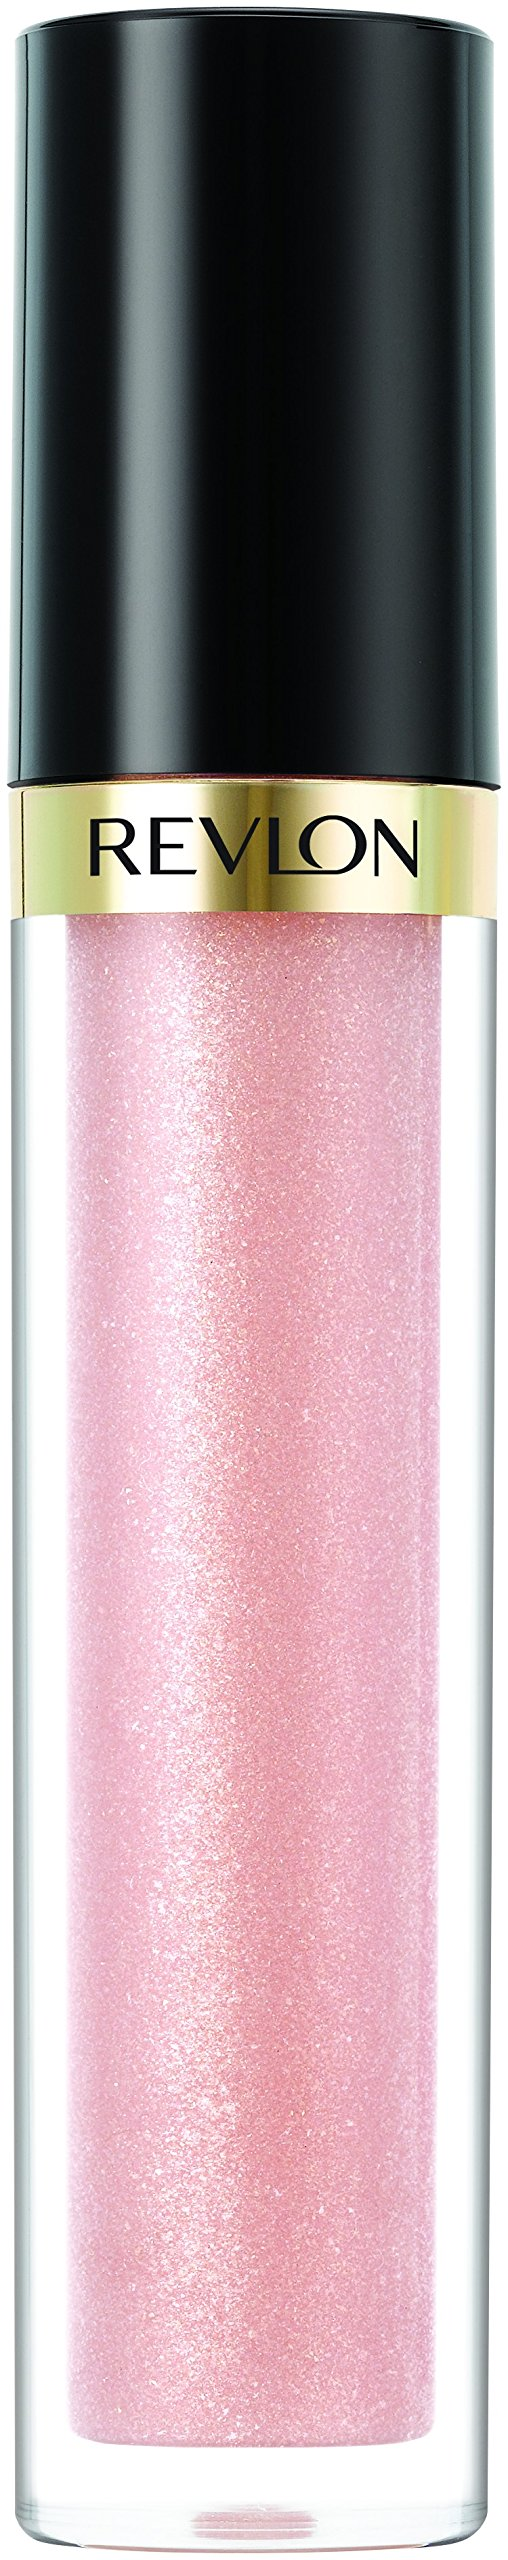 Revlon Super Lustrous Lip Gloss, Snow Pink